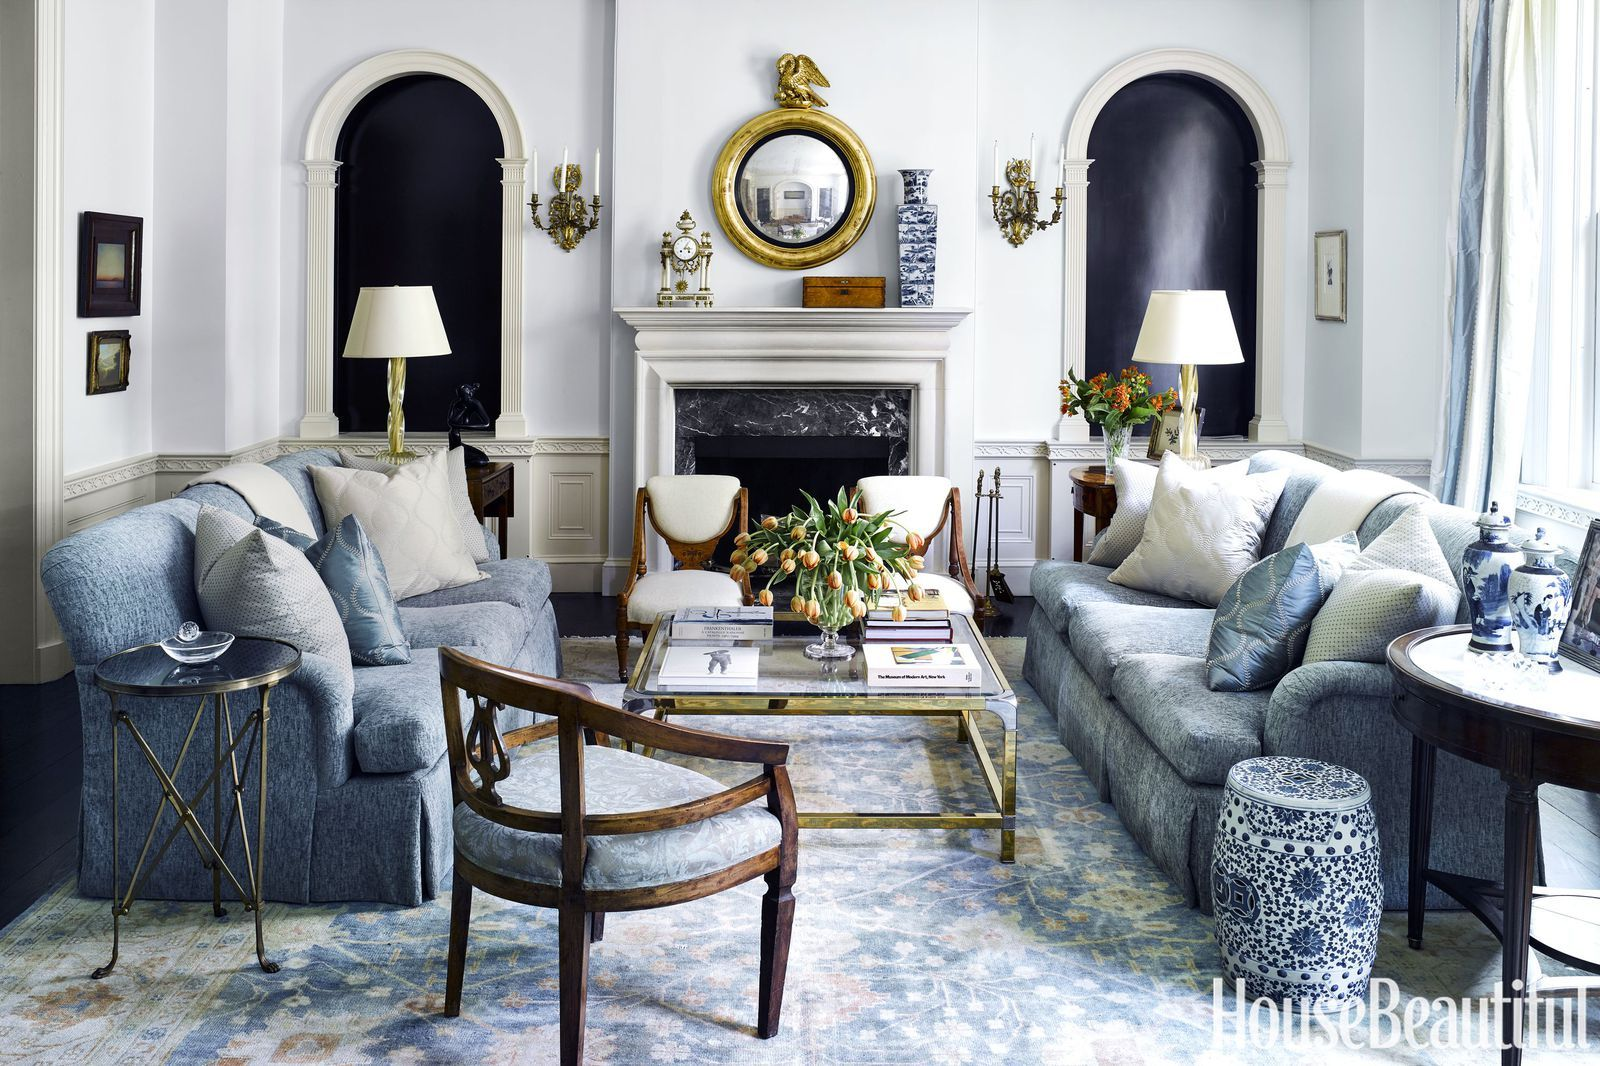 25 French Country Style Rooms With Clever Ideas That Ll Transport Your Home To France French Country Living Room Country Living Room Country Interior Design